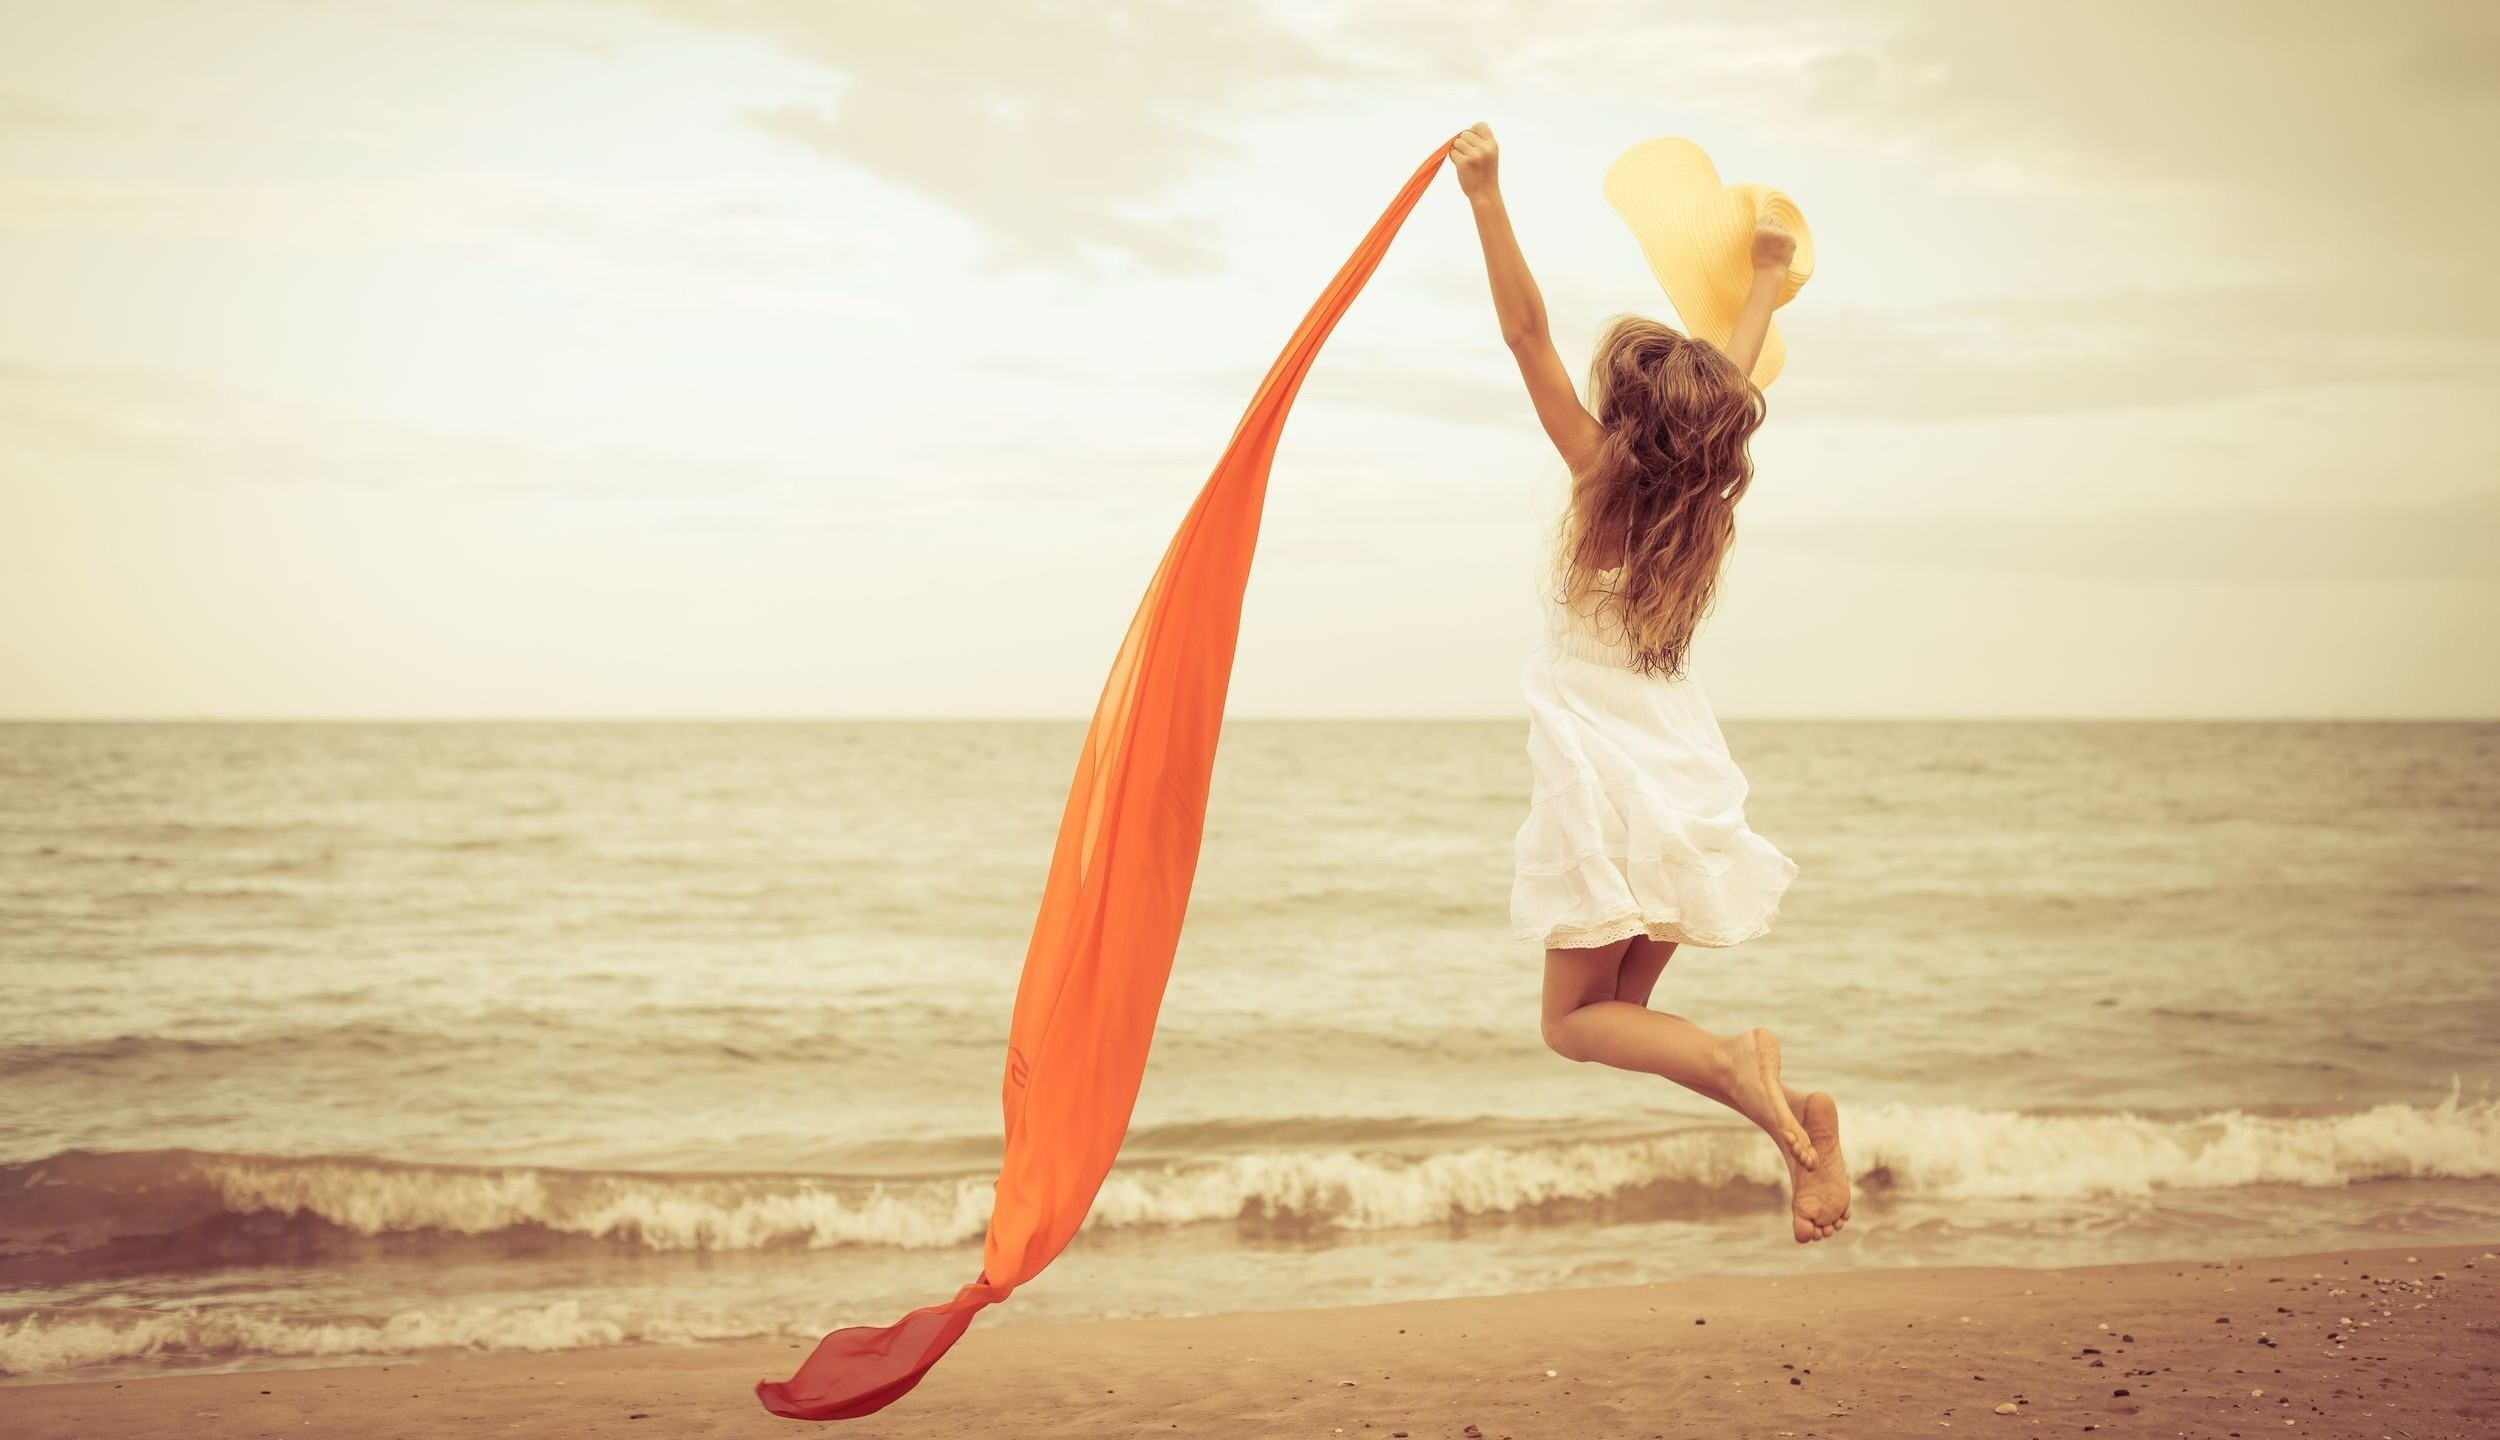 Download this Happiness Beach Girl Download Close picture